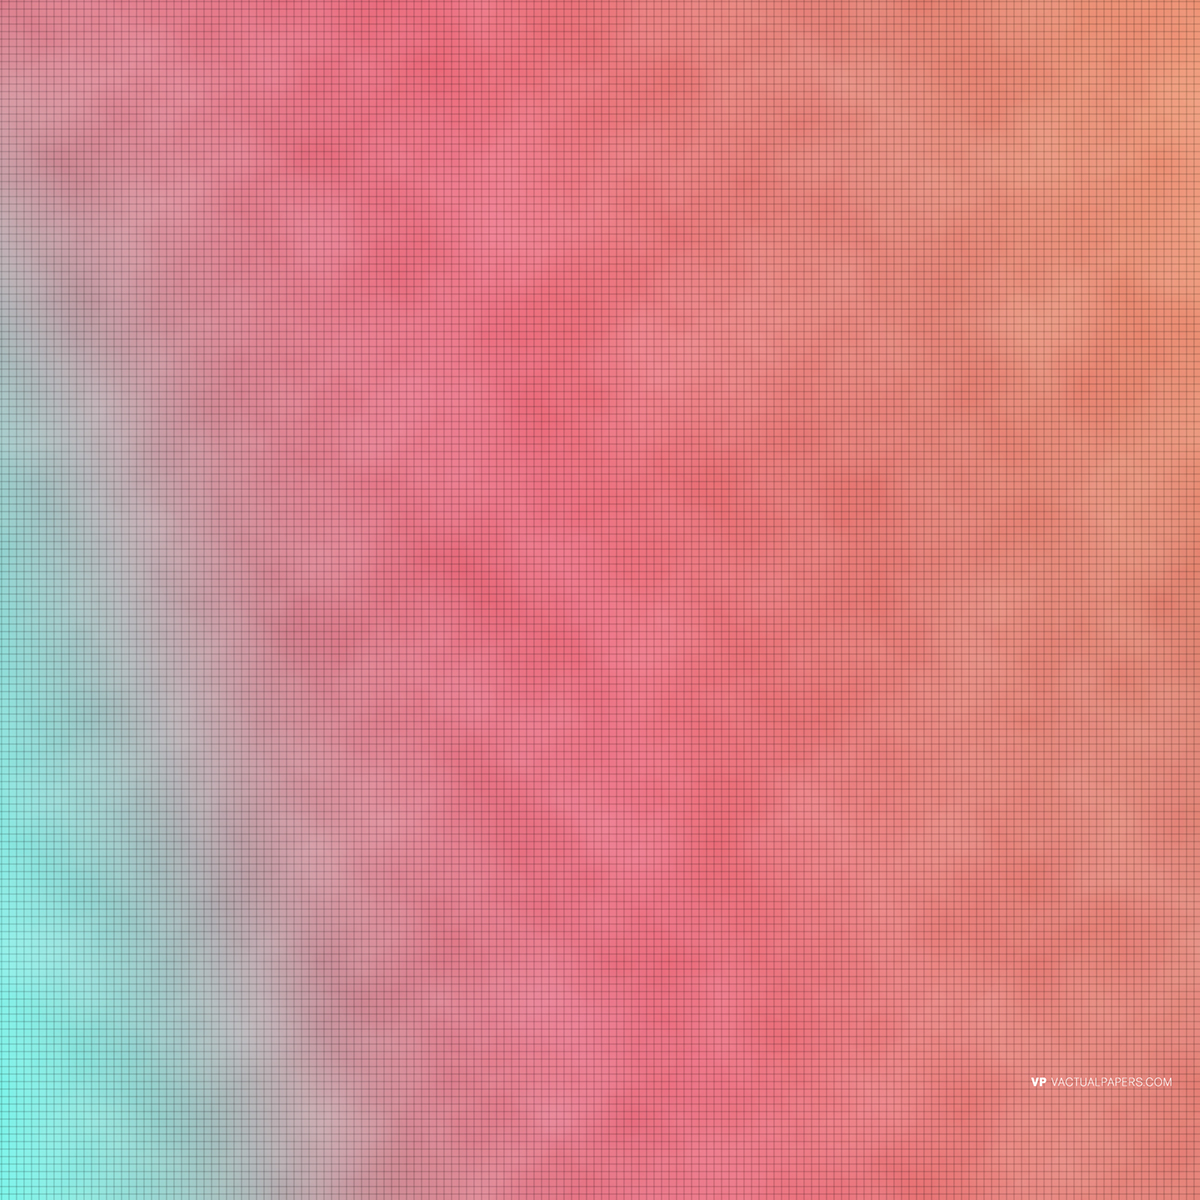 abstract backgrounds colors texture effects free download 1920x1920 HD